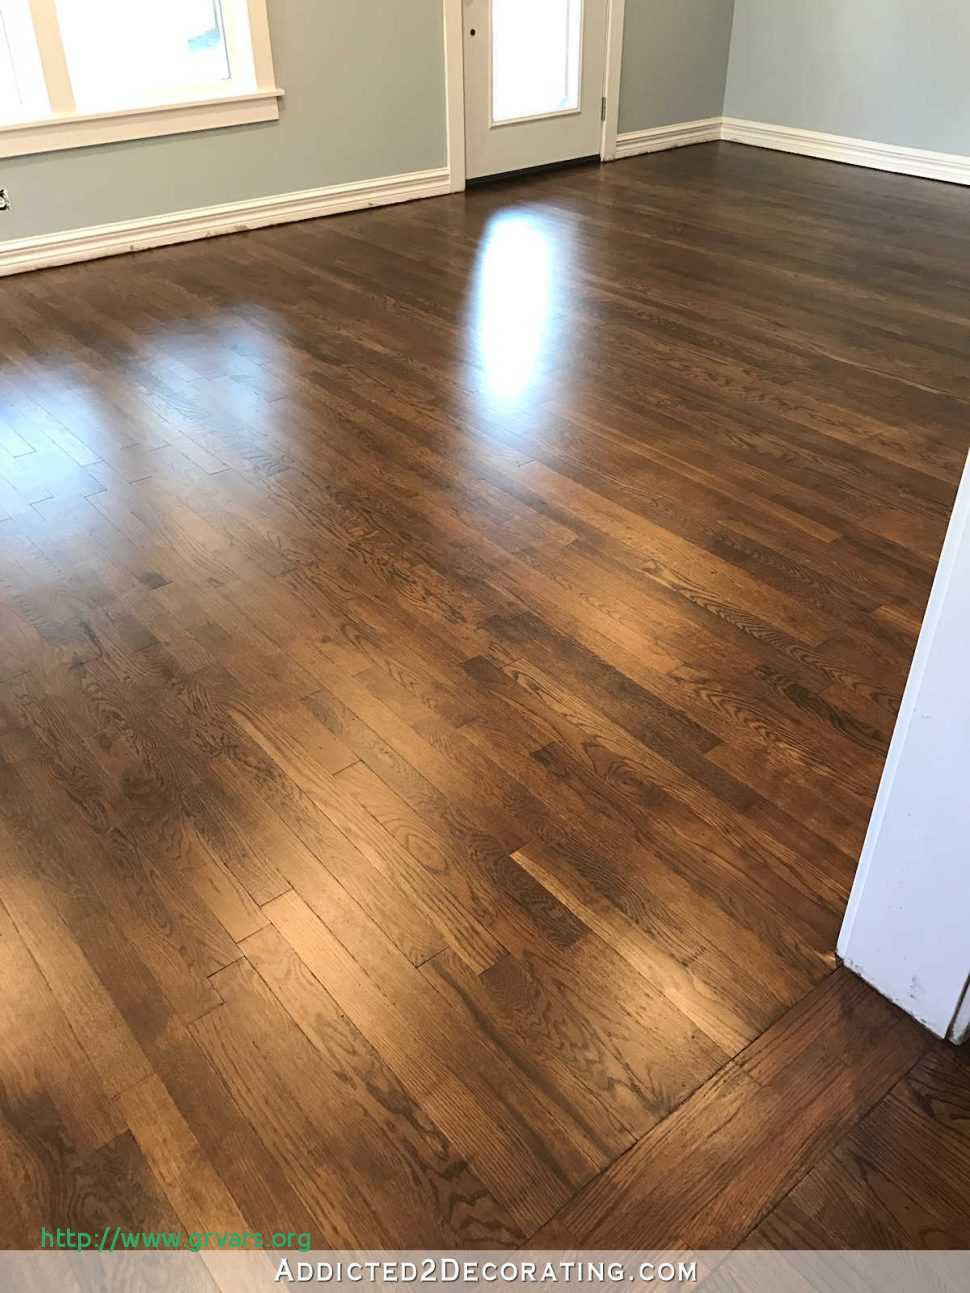 hardwood floor repair nj of 25 impressionnant how much does it cost to redo hardwood floors regarding how much does it cost to redo hardwood floors a‰lagant refinishing hardwood floors without sanding fix